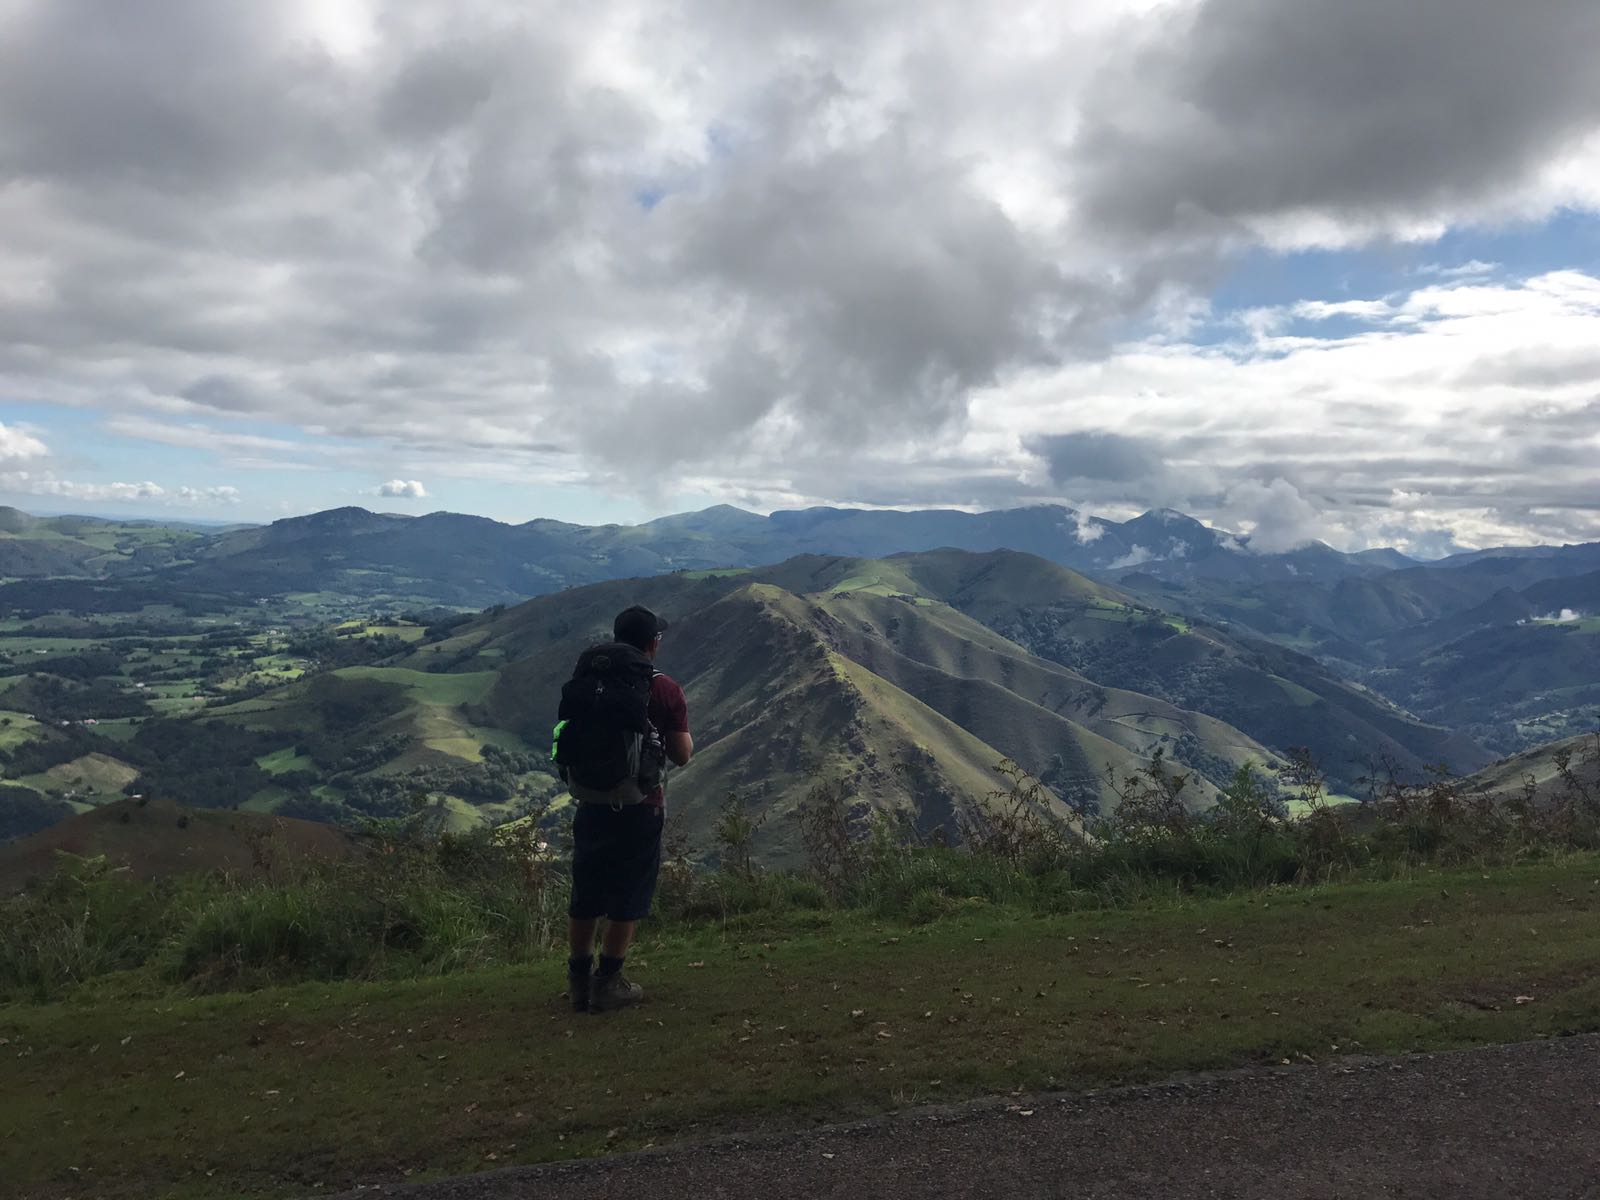 Tom looking over the hills in the valley